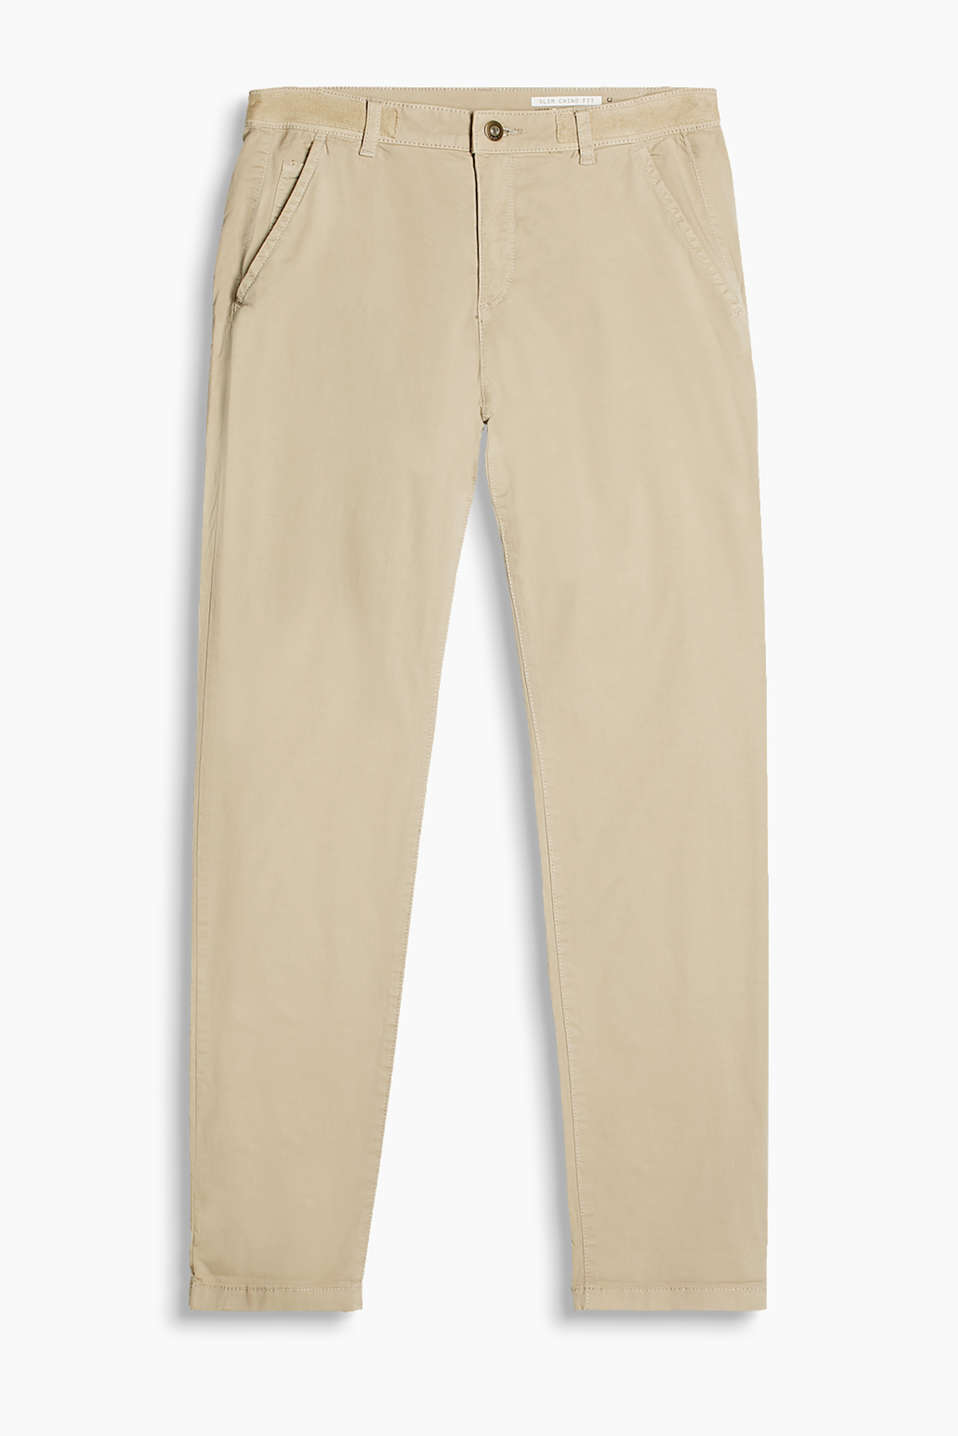 Chinos in a five-pocket style with a garment-washed finish